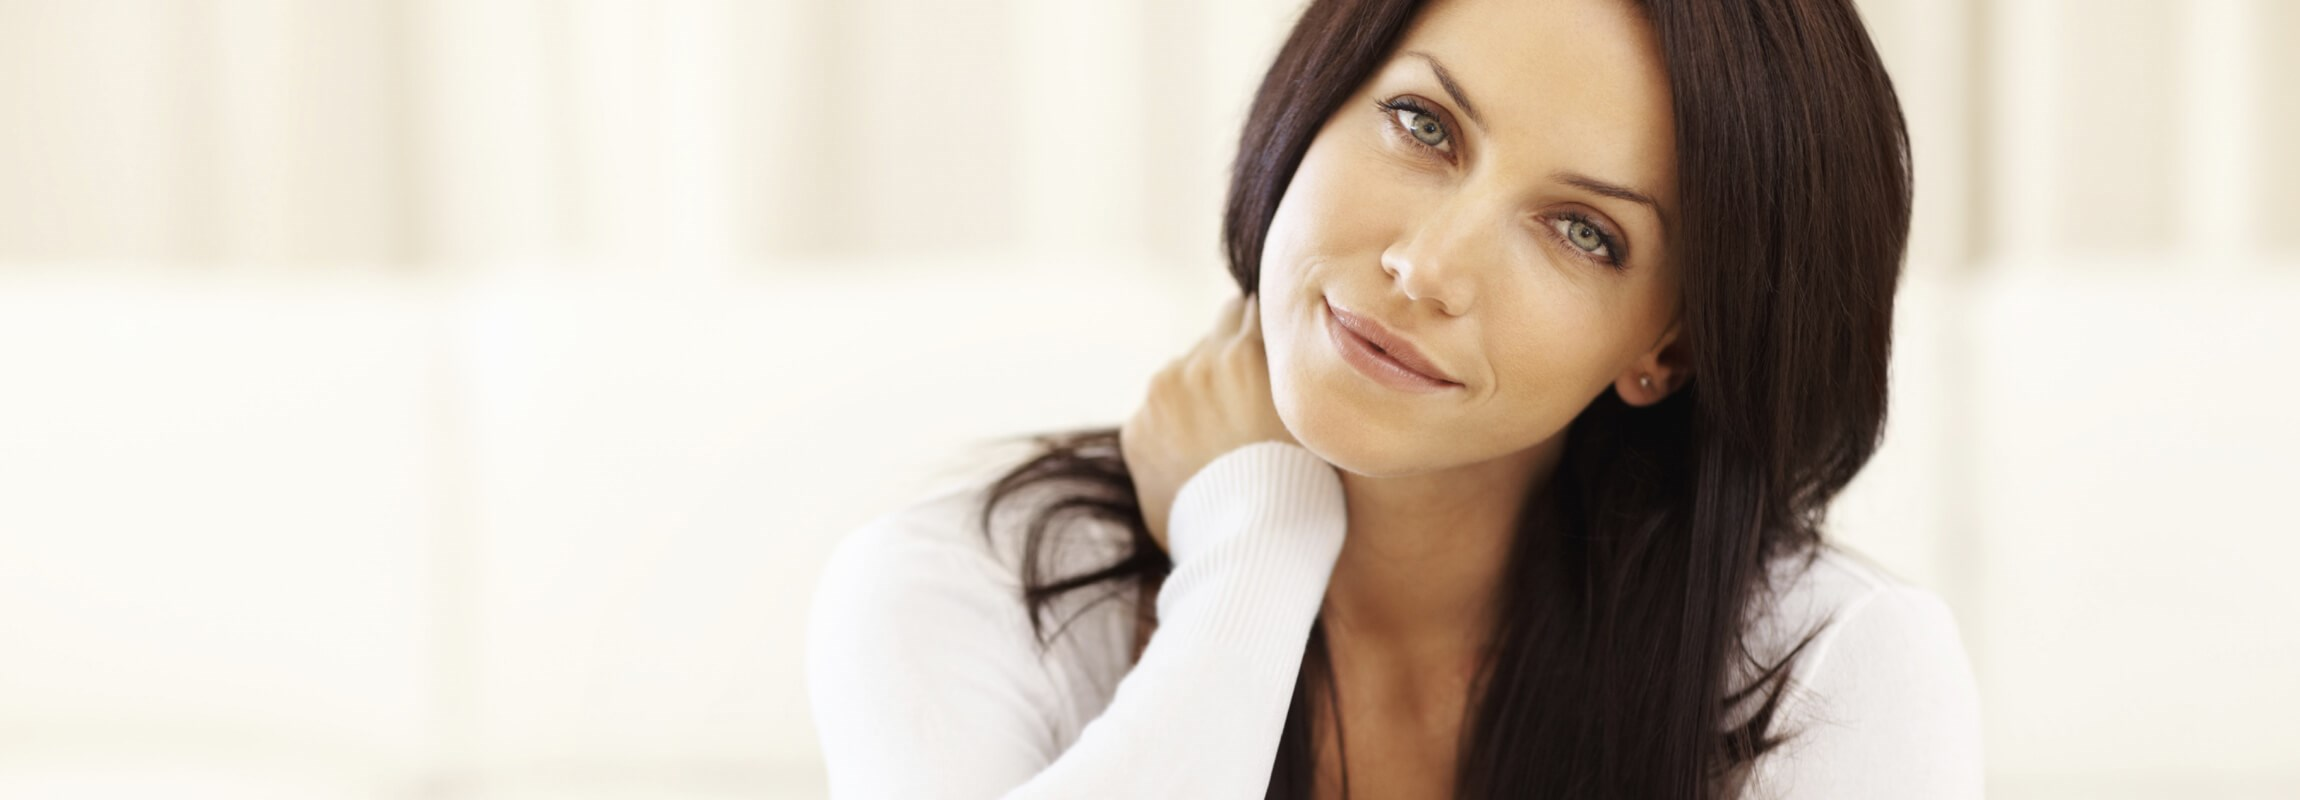 About The Aesthetic/Restorative Breast Center -